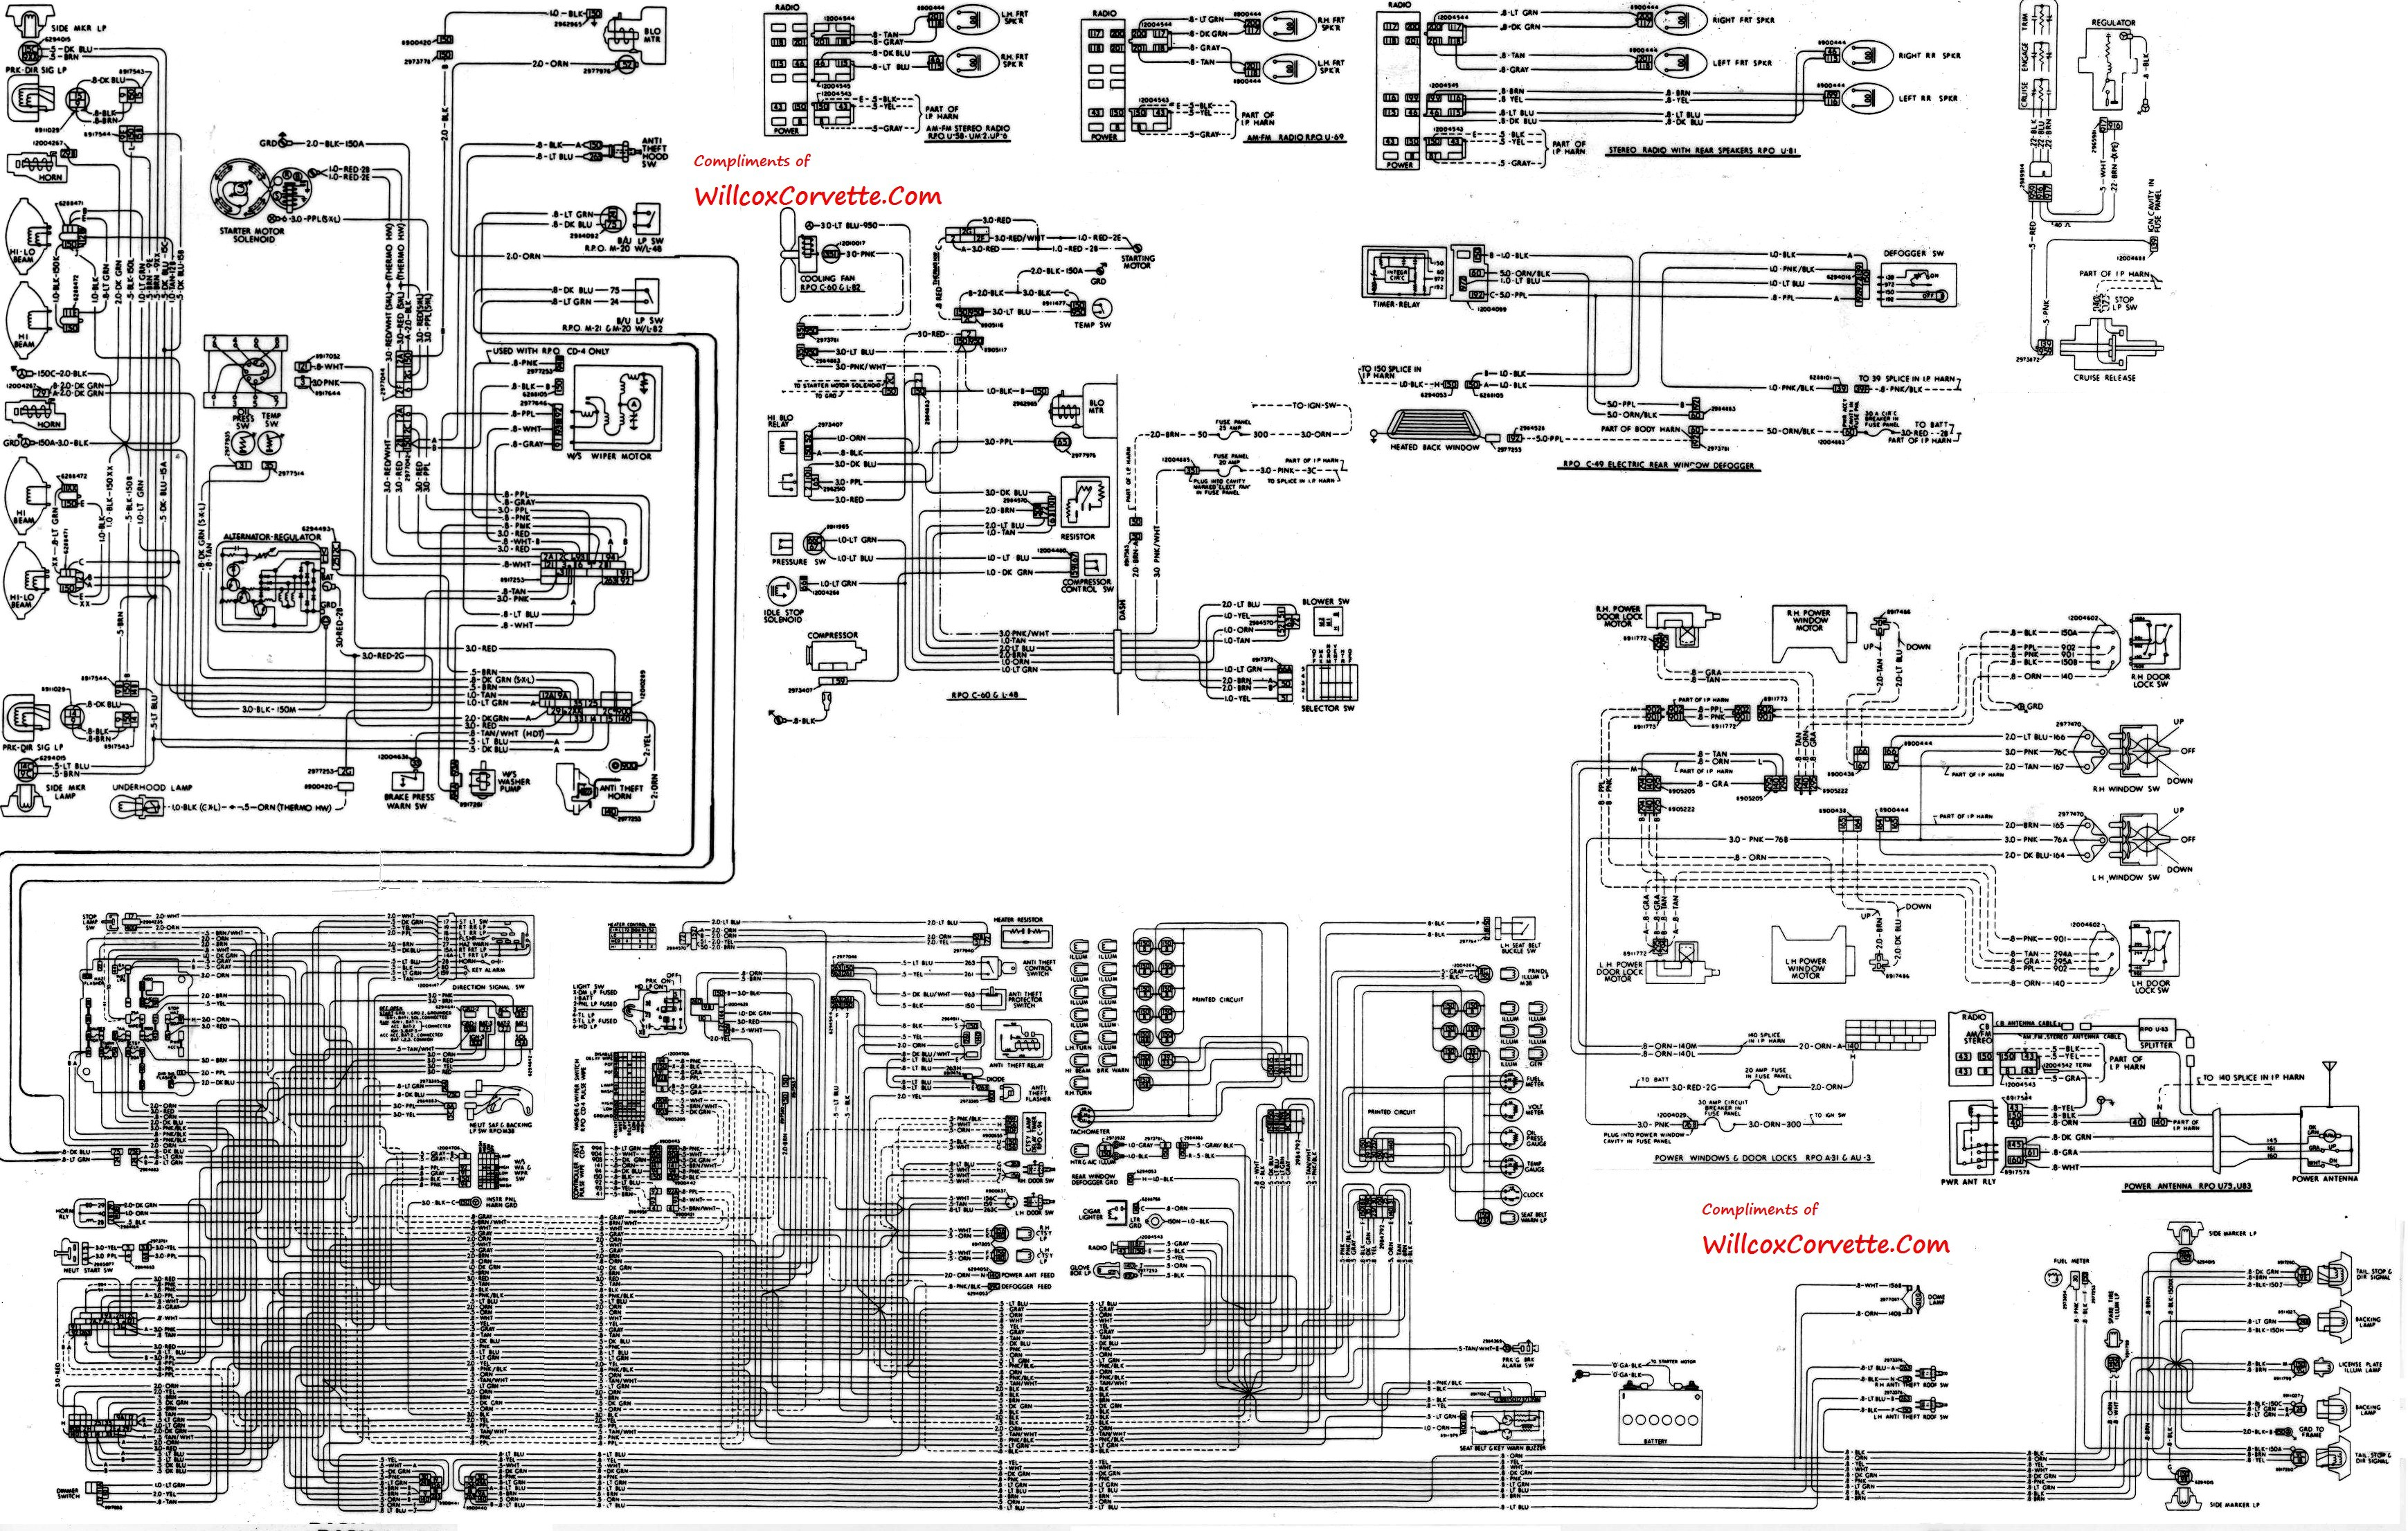 Electrical wiring diagram symbols car electrical wiring diagram electrical wiring diagram symbols electrical diagram symbols originalstylophone of electrical wiring diagram symbols car electrical wiring asfbconference2016 Gallery